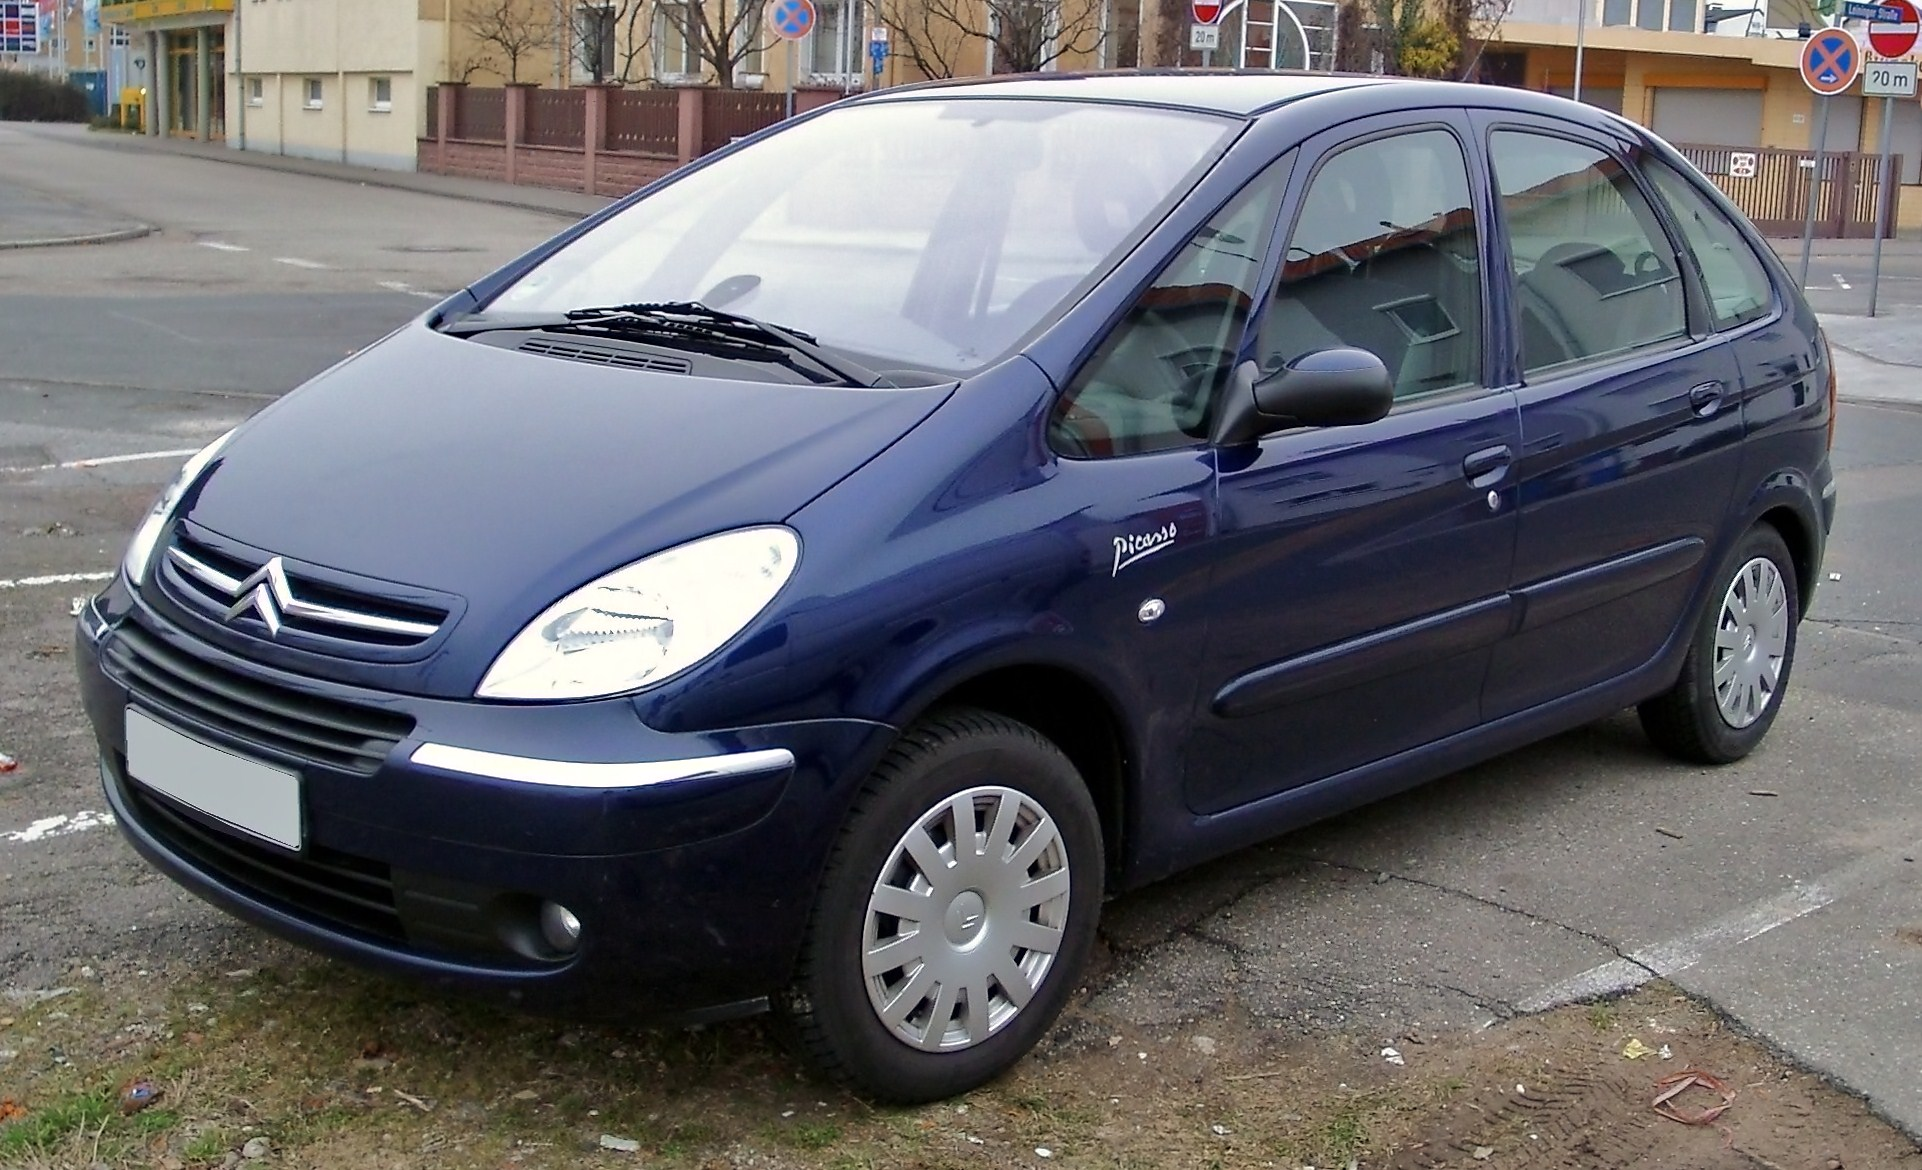 file citroen xsara picasso front wikipedia. Black Bedroom Furniture Sets. Home Design Ideas